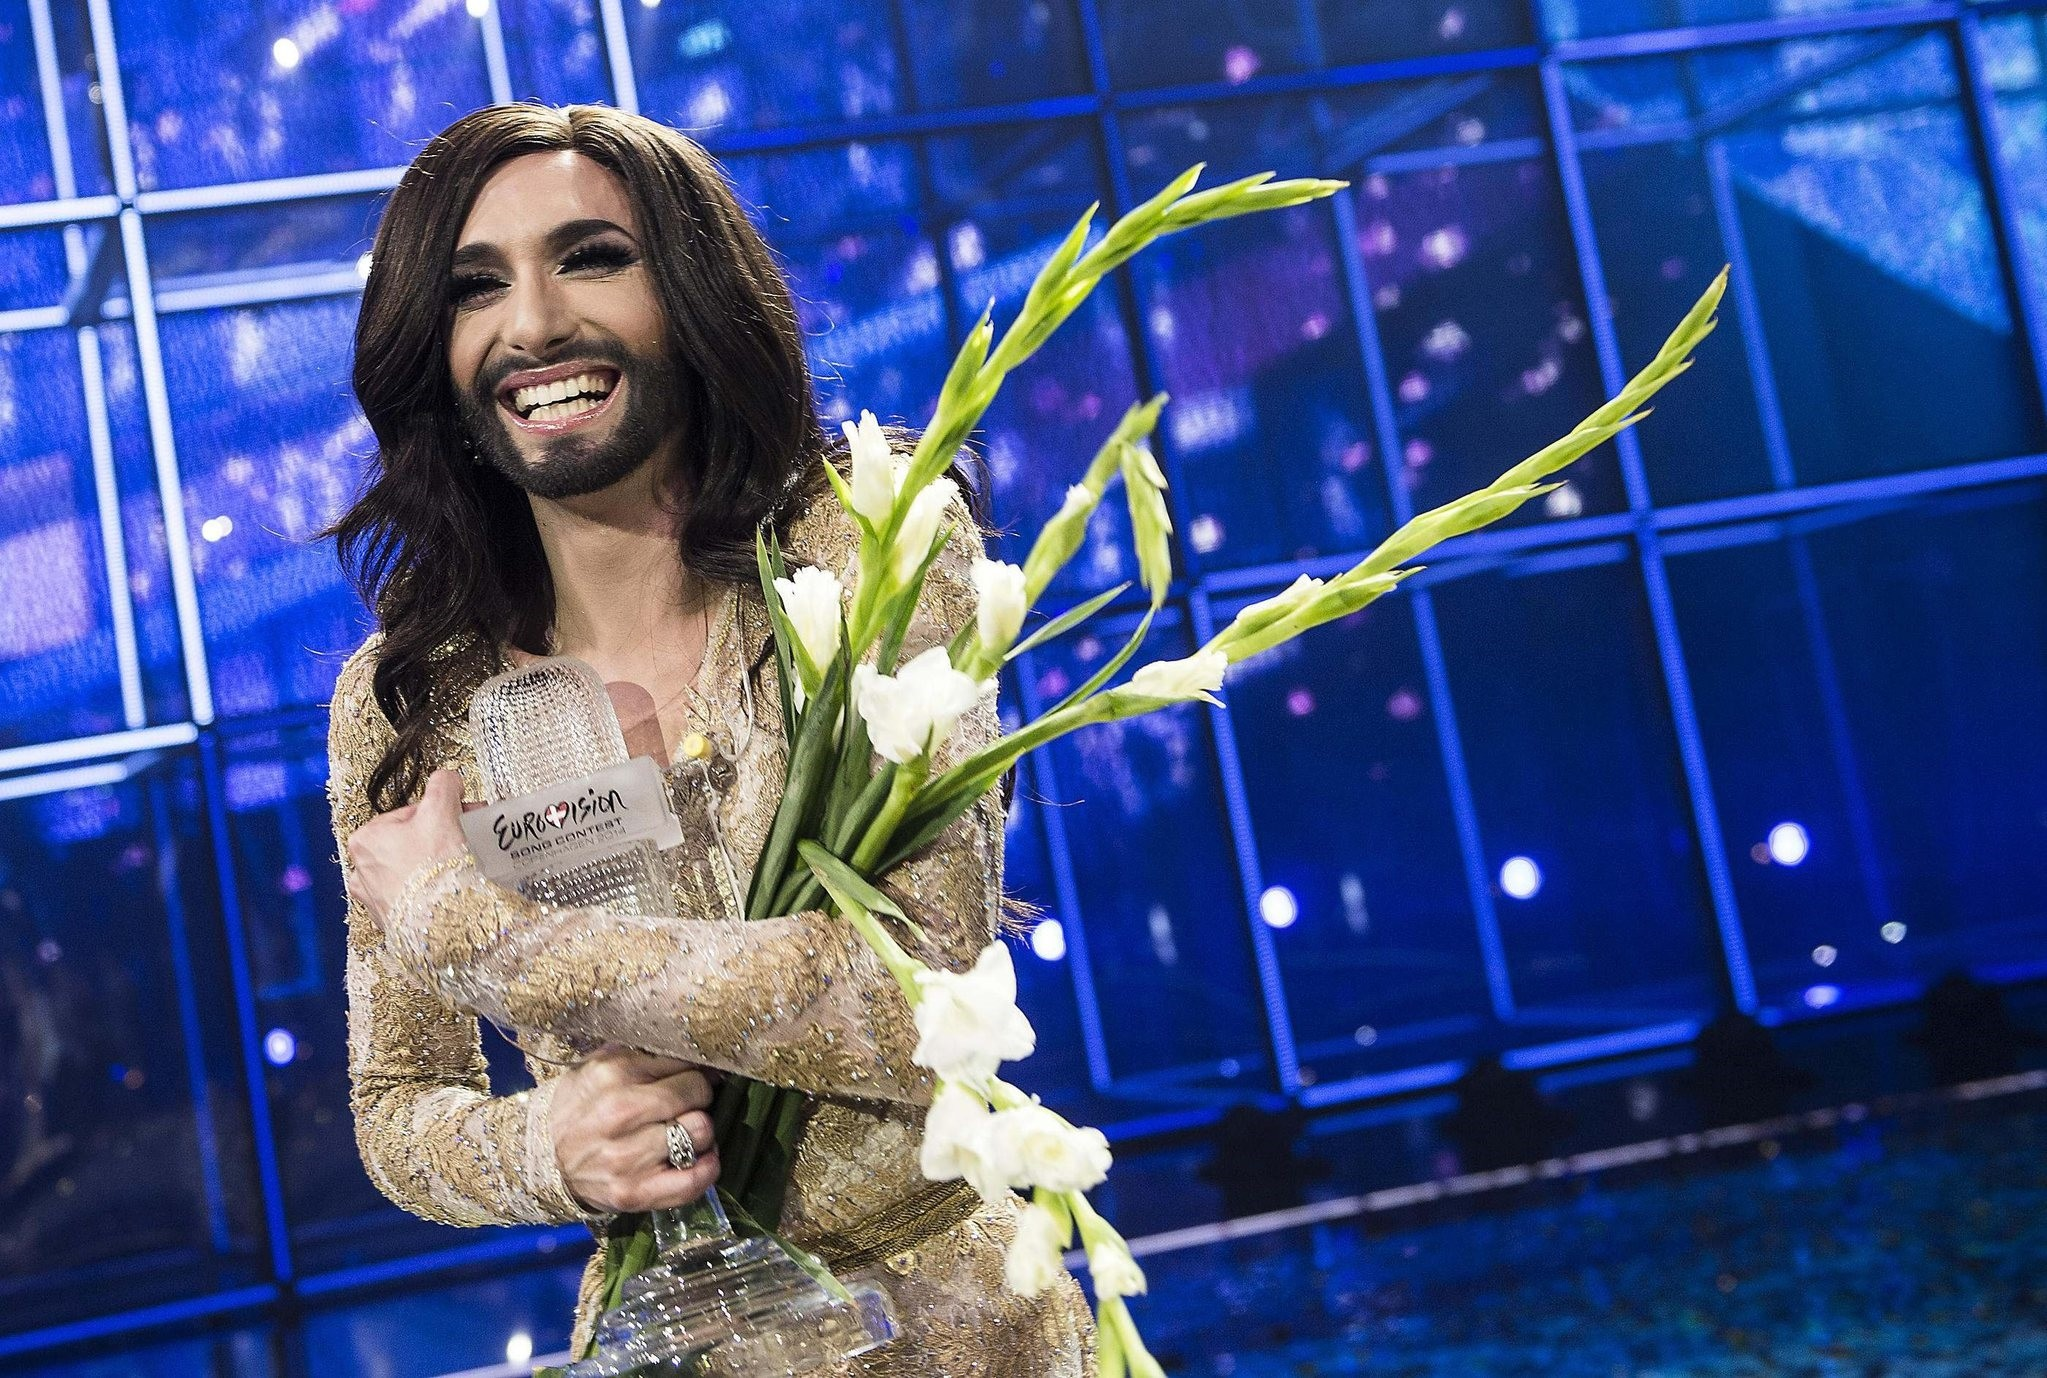 Conchita Wurst representing Austria poses with the trophy after winning the 59th annual Eurovision Song Contest (ESC) at the B&W Hallerne in Copenhagen, on May 10, 2014. (REUTERS Photo)